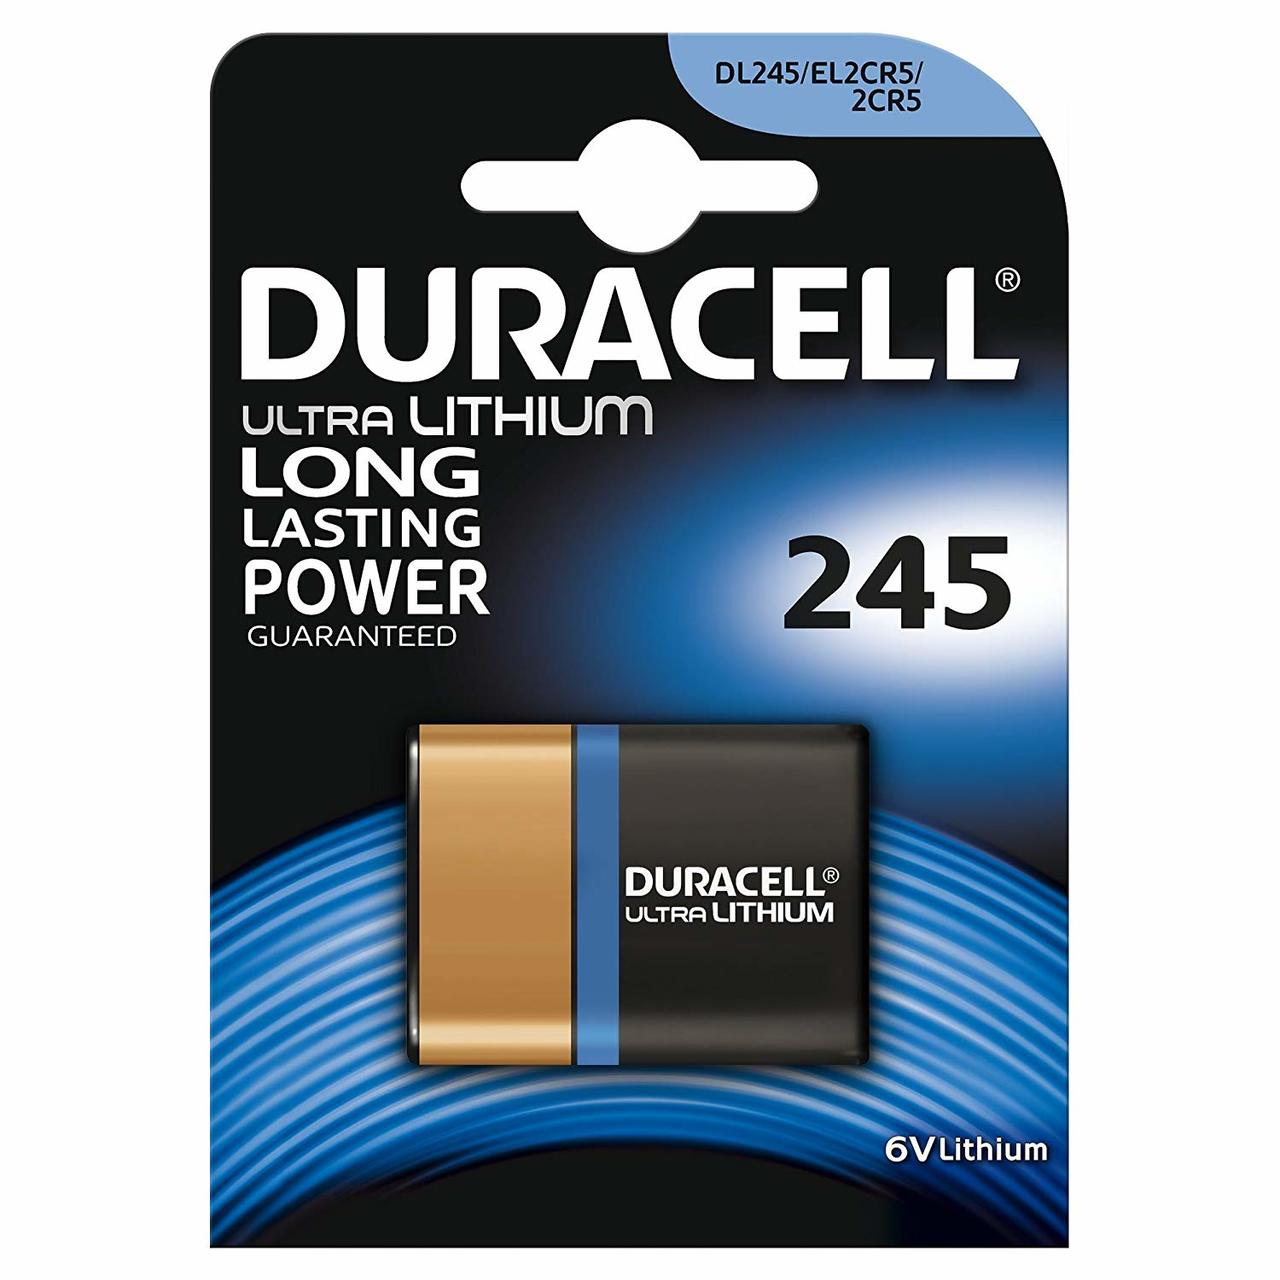 DURACELL ULTRA PHOTO LITHIUM 245 6V